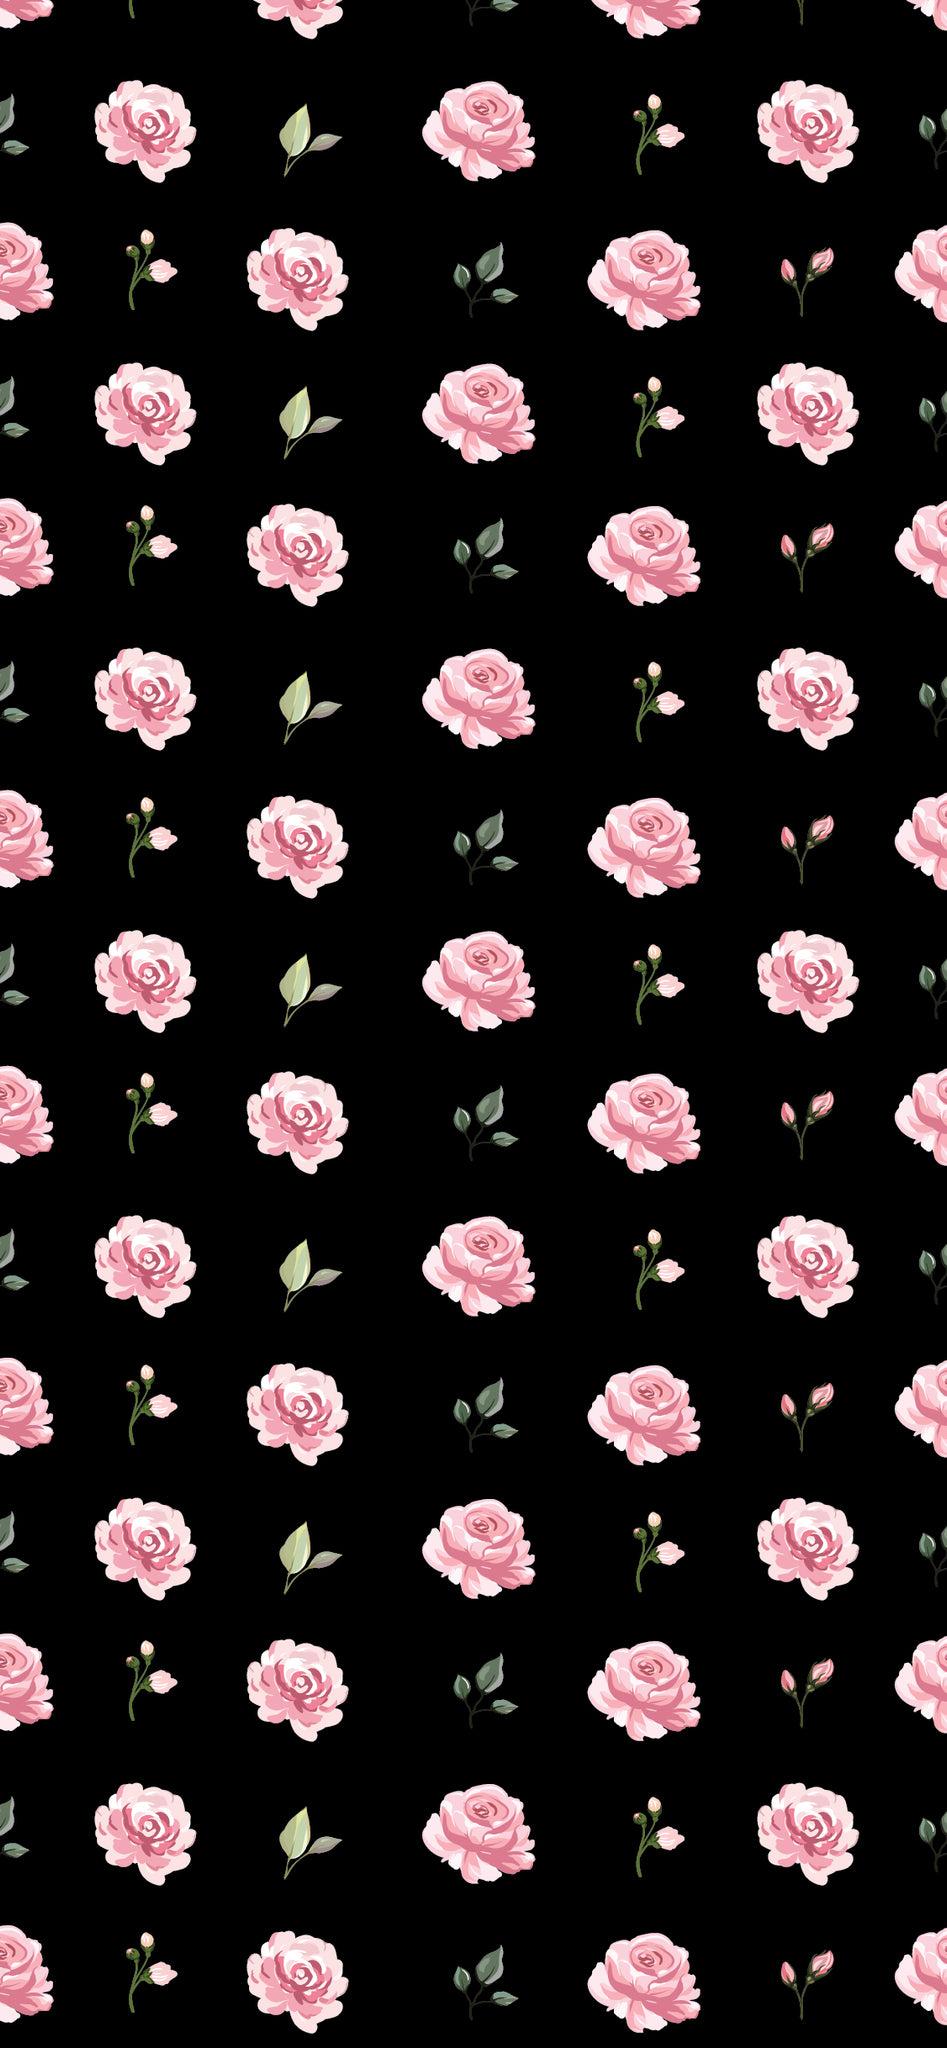 Coming up Roses Wallpaper by Dr. Woof Apparel